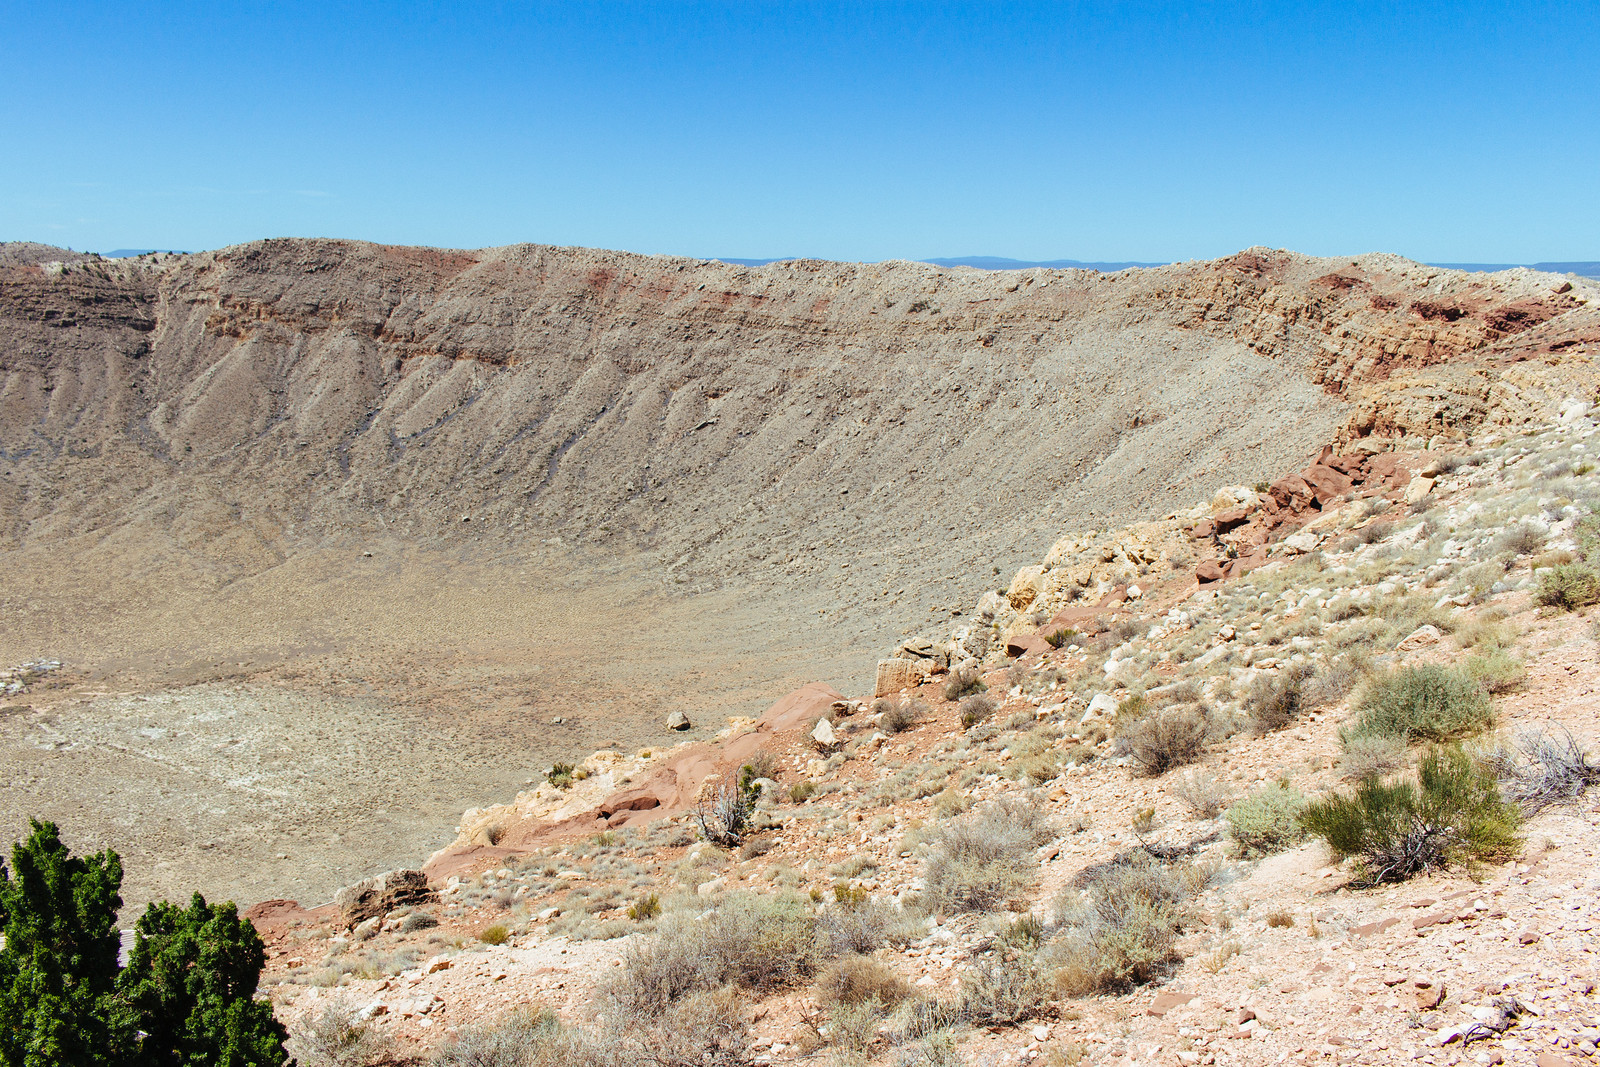 Impact crater seen from the rim in Arizona